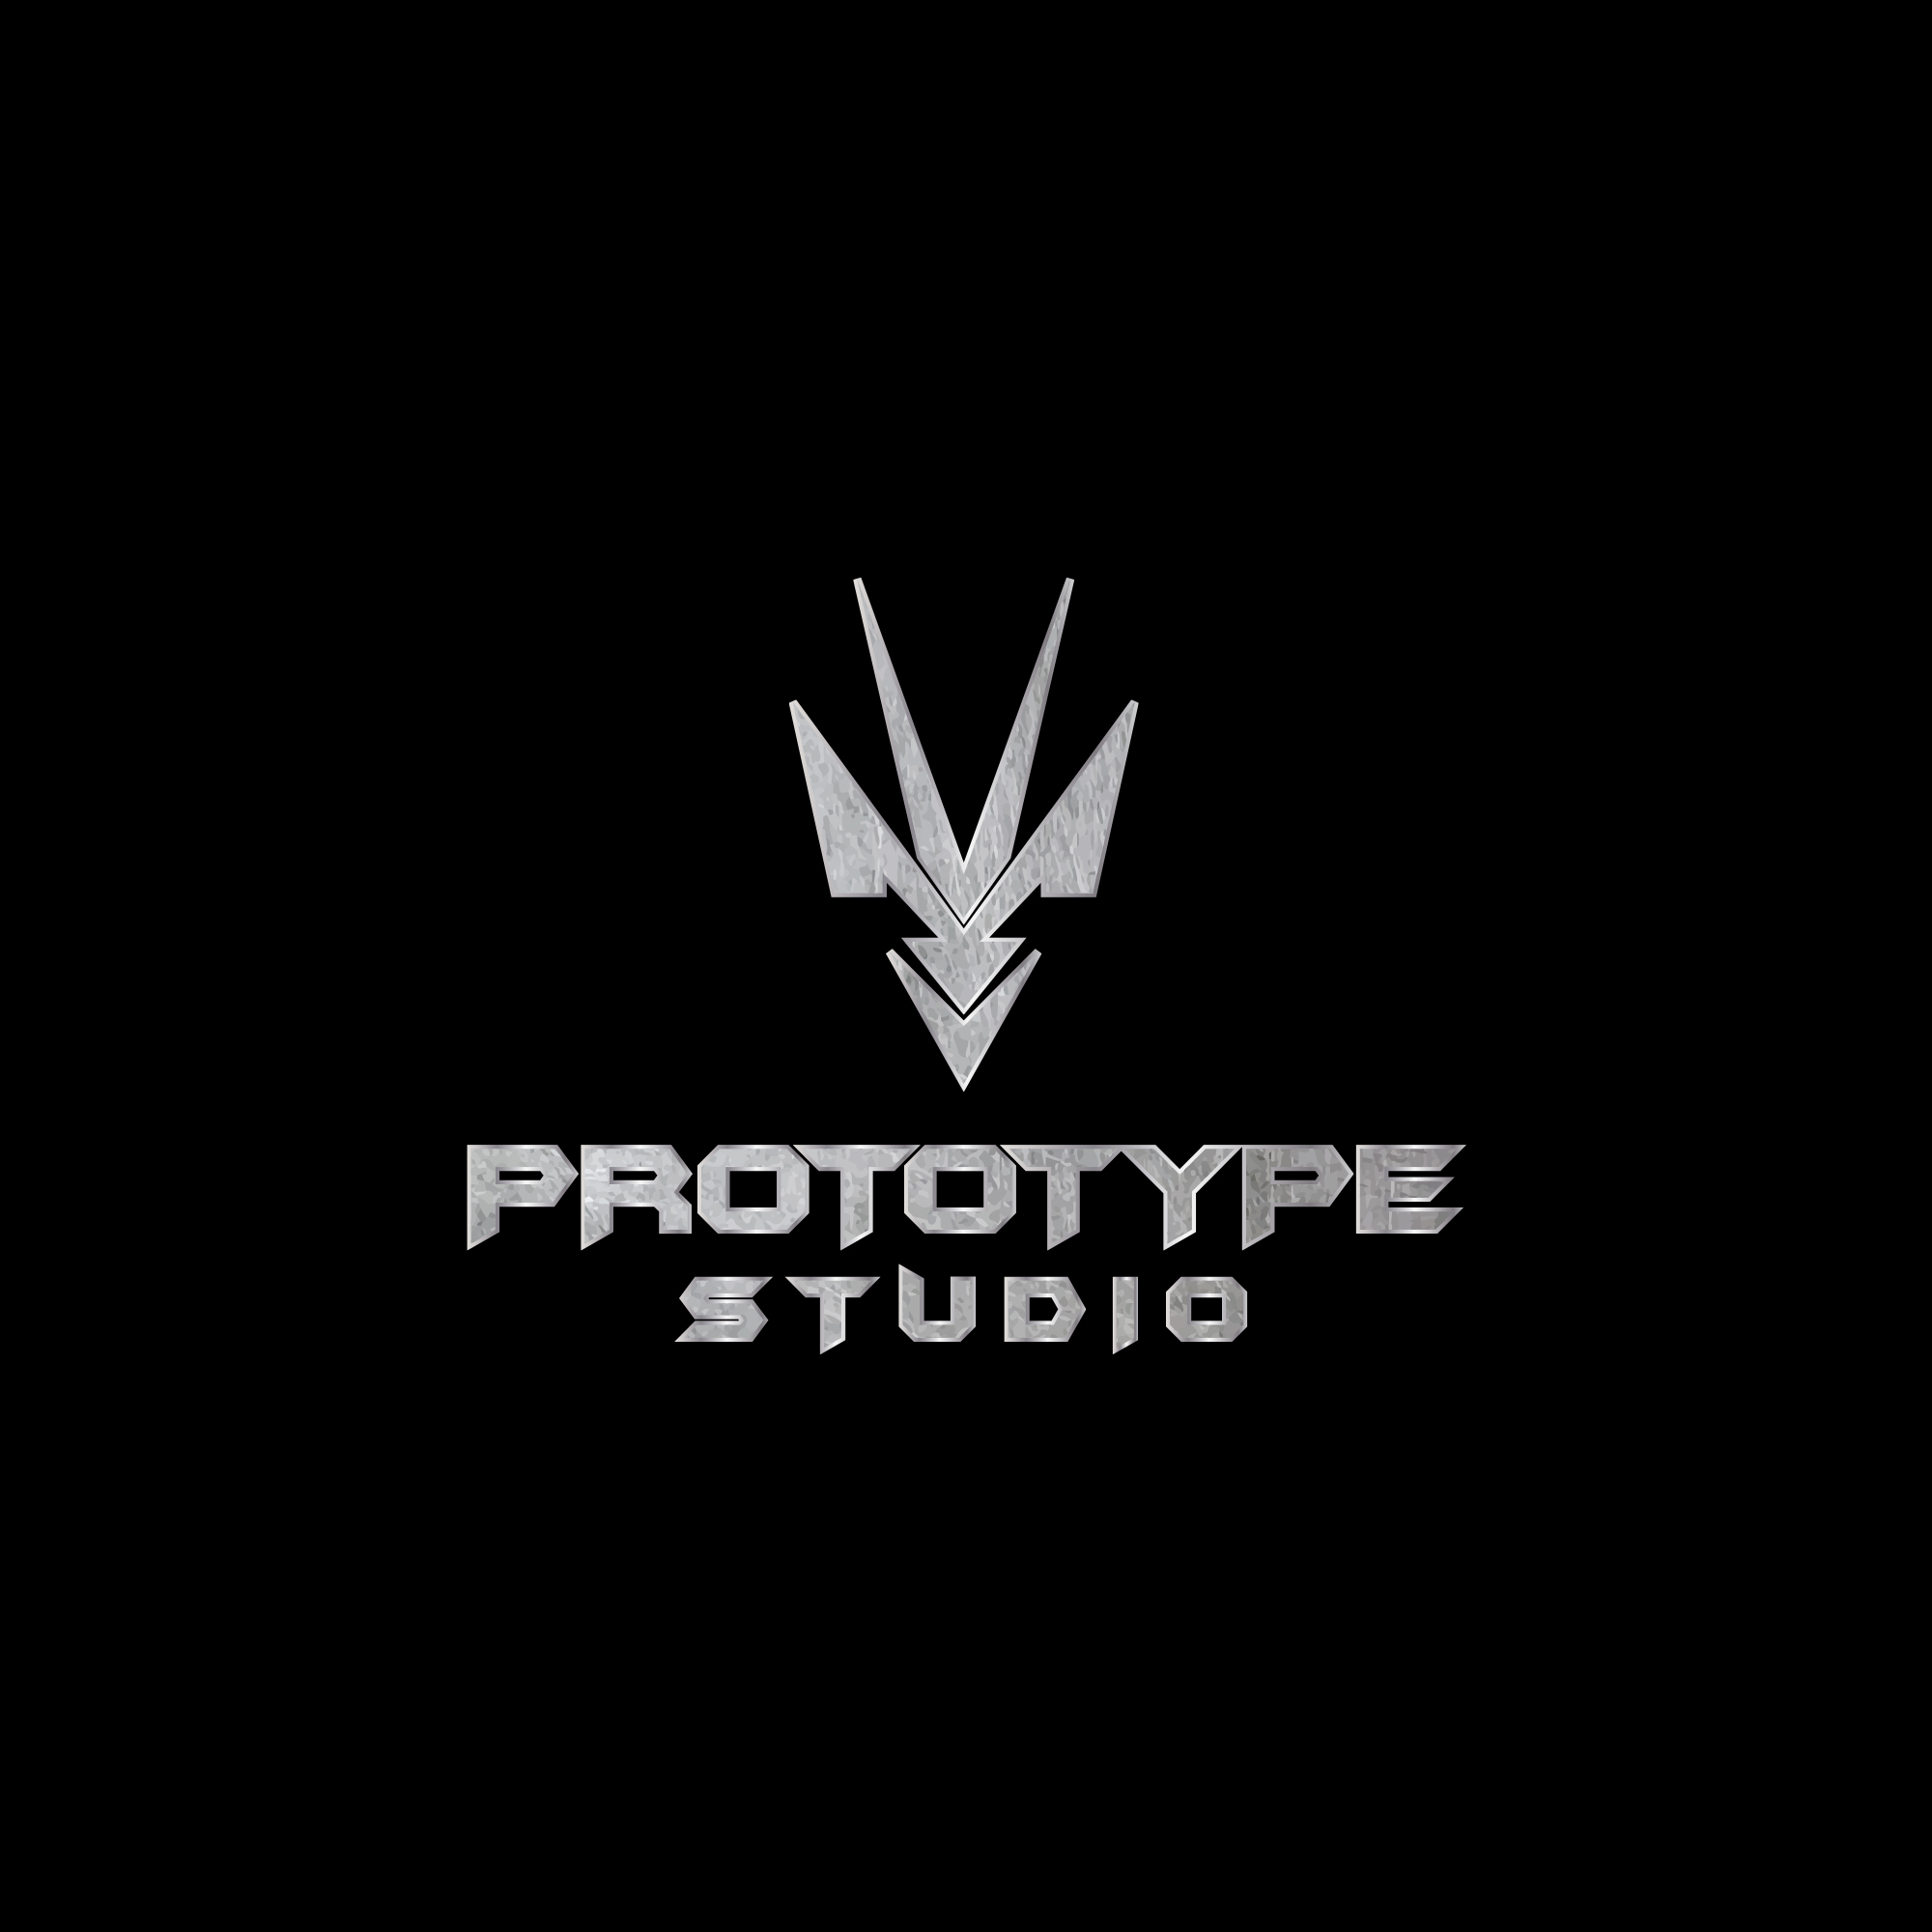 Prototype Studio's profile picture